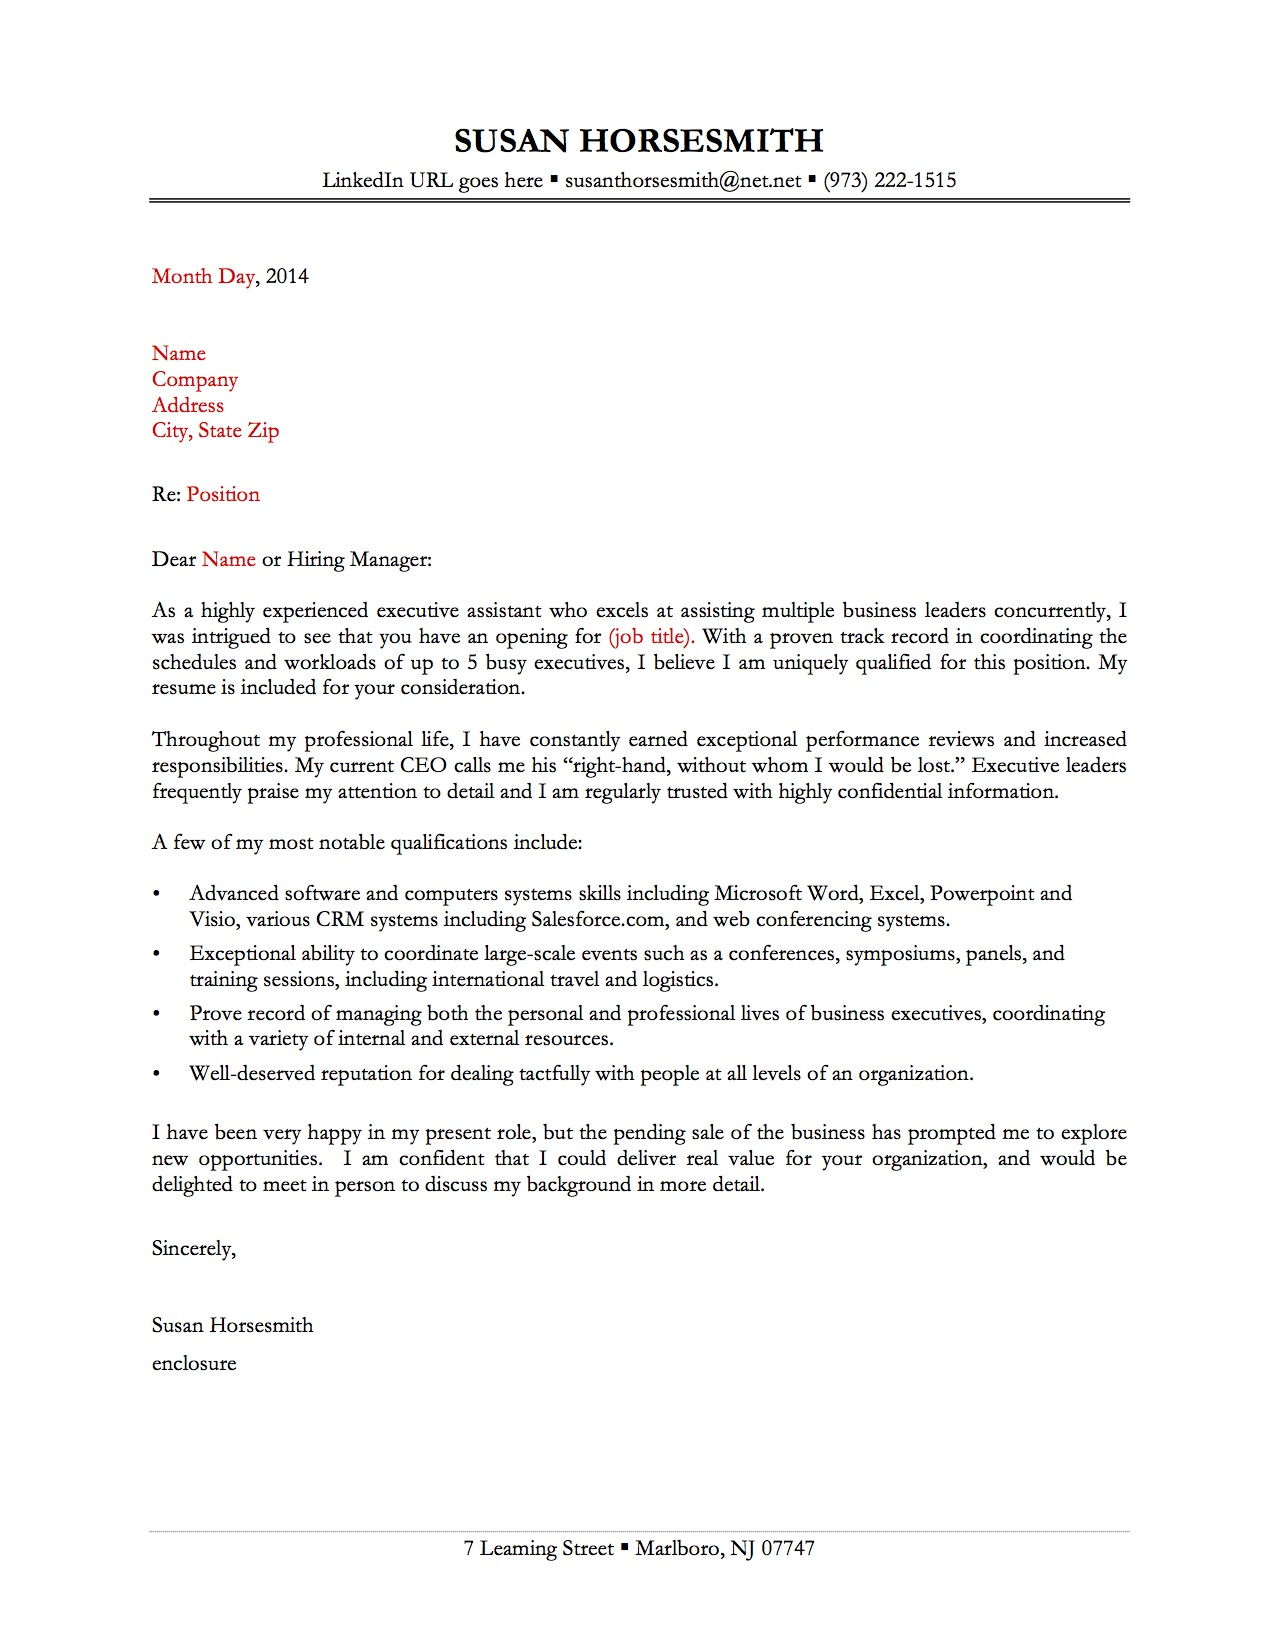 Sample Cover Letter 1